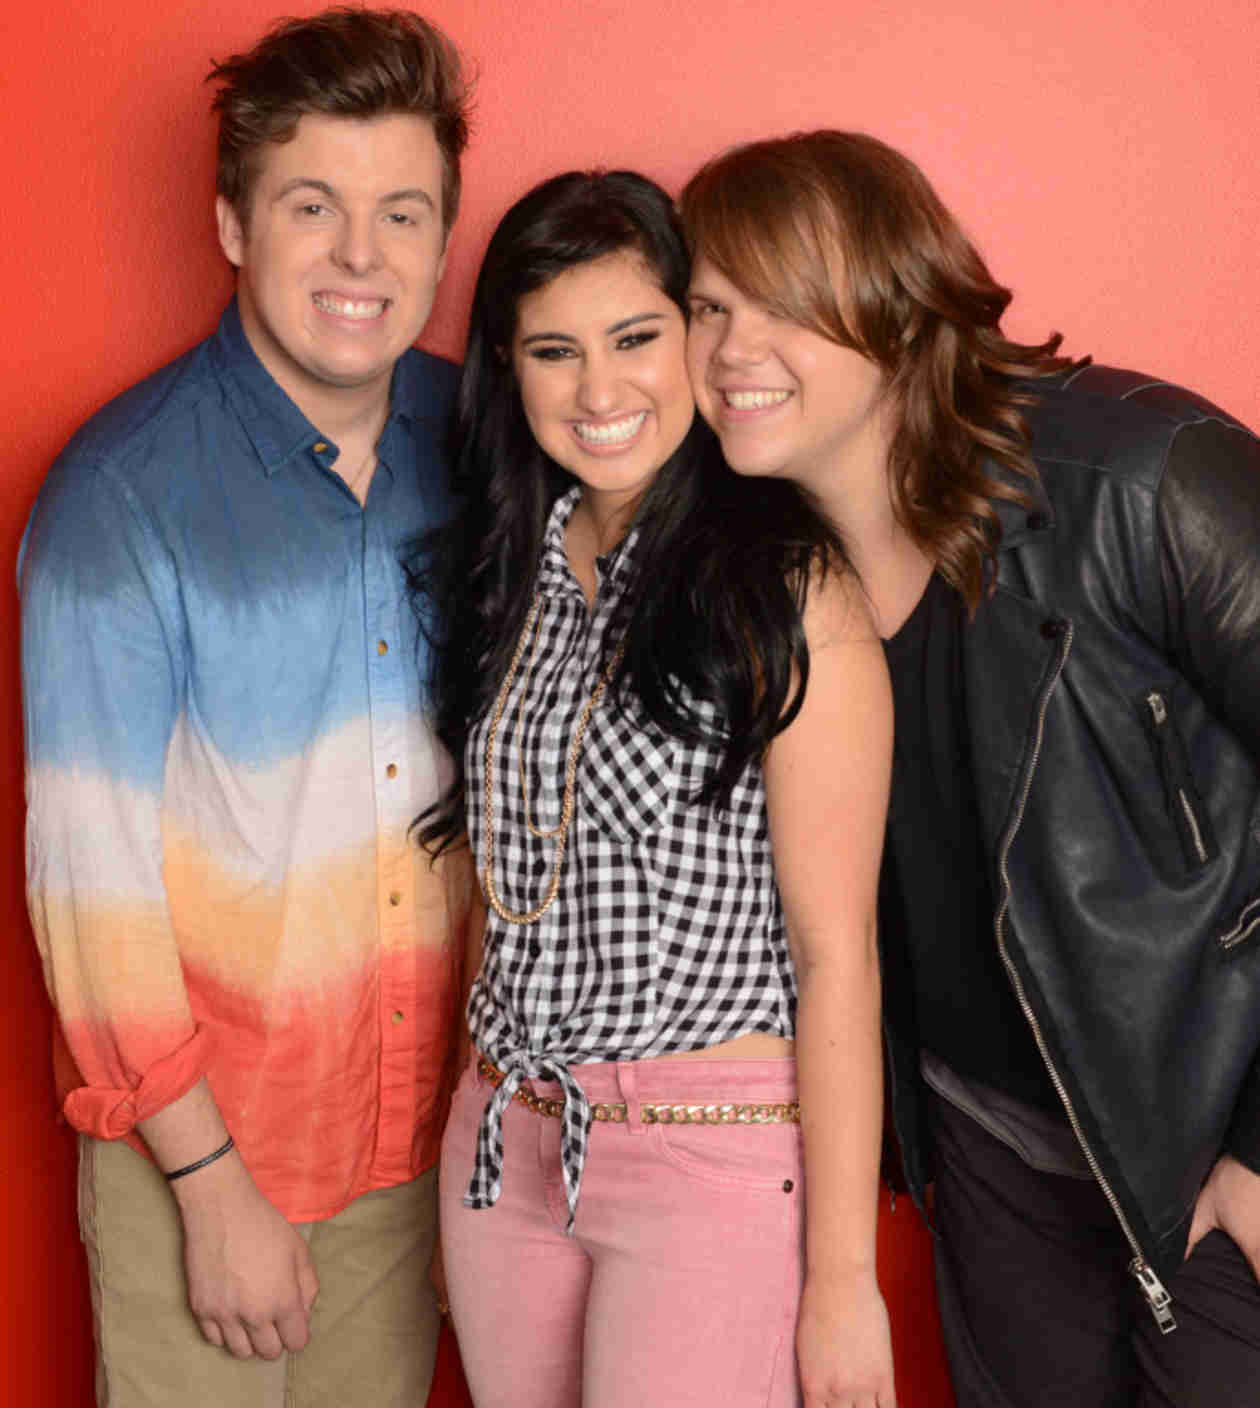 American Idol 2014: Who Should Go Home From The Top 3 — May 15, 2014?